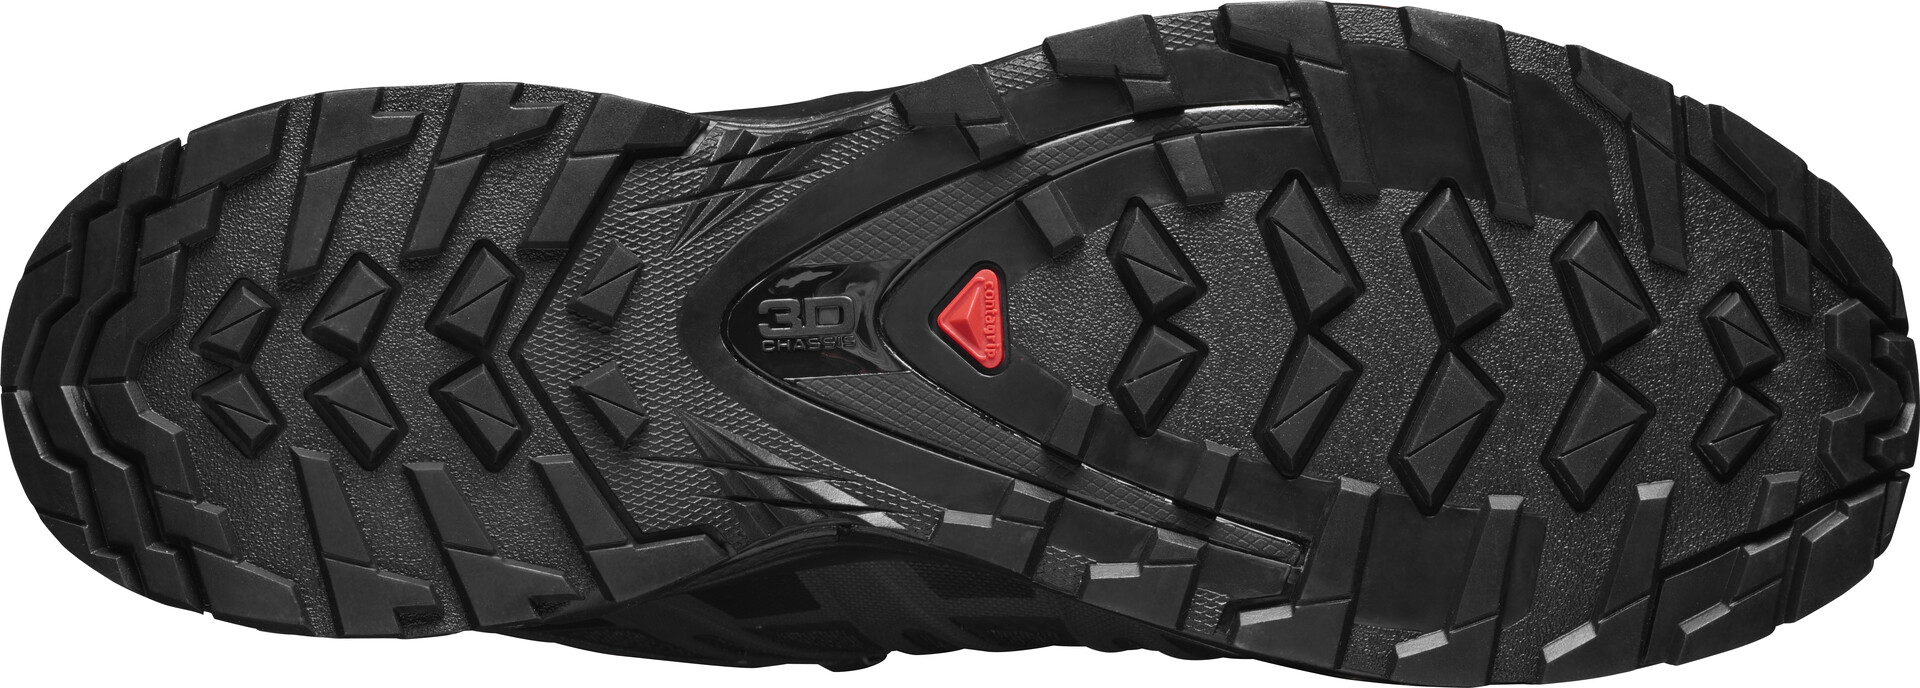 Salomon XA Pro 3D v8 GTX Schuhe Damen blackblackphantom